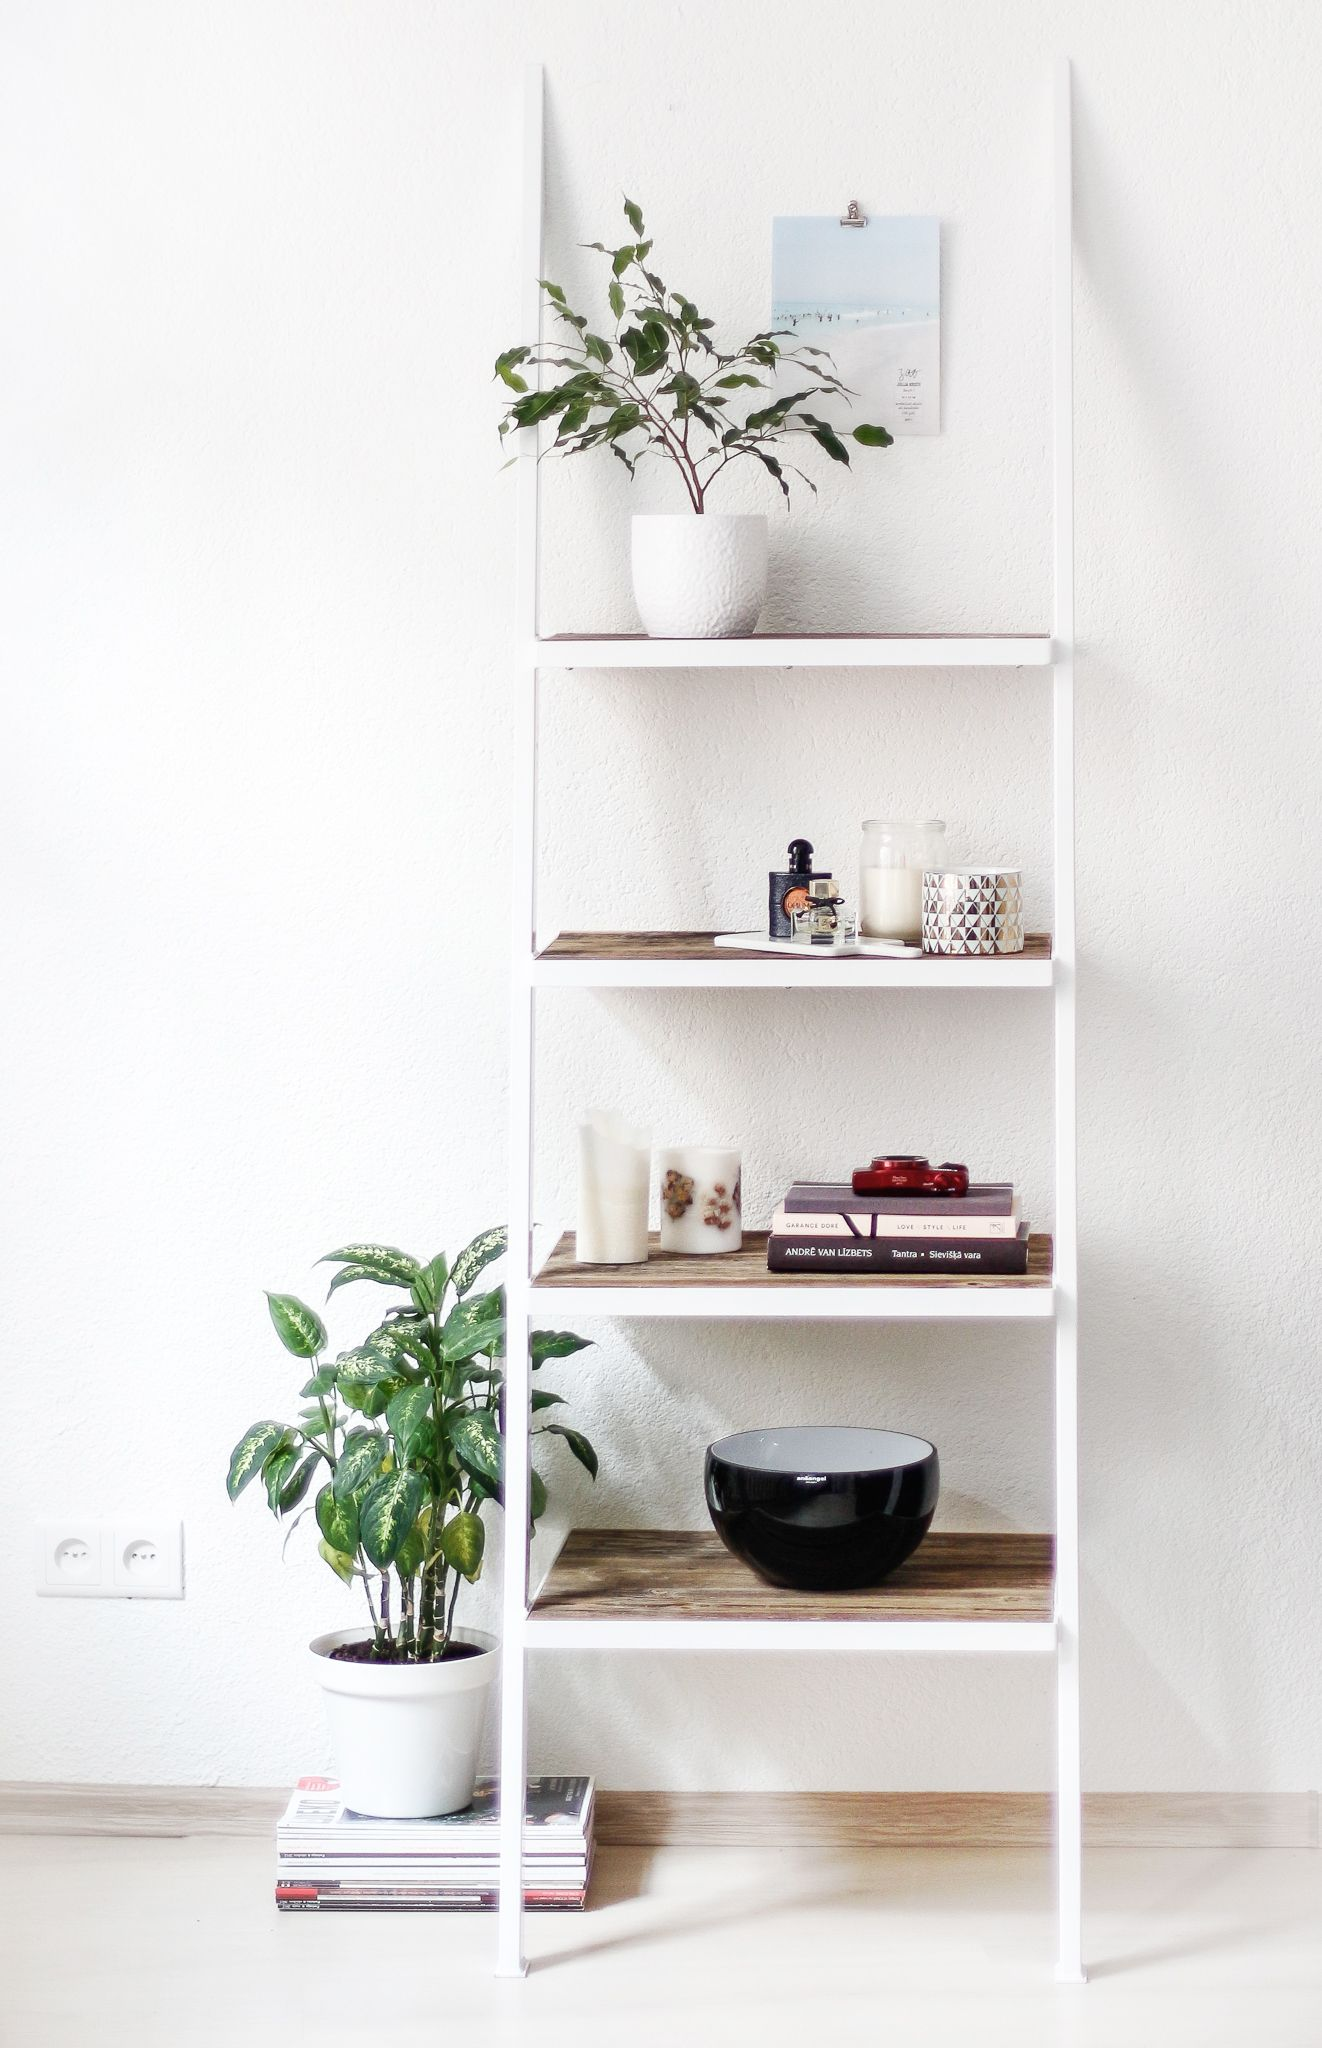 naive wood factory  white shelf  femme do love  pinterest  - naive wood factory  white shelf